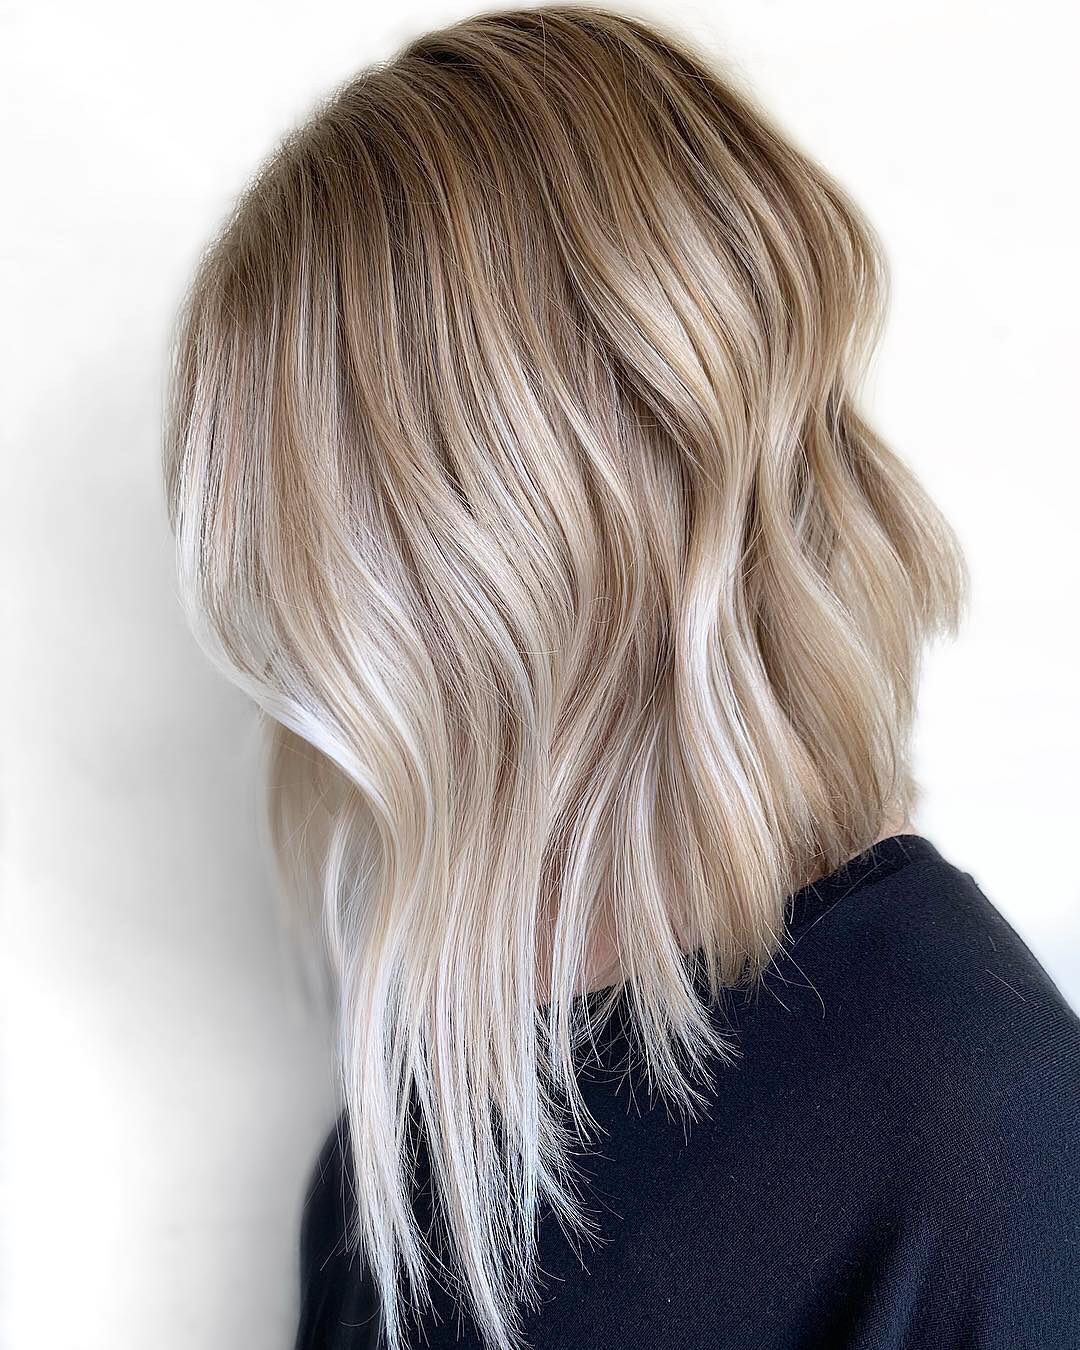 Stylish Ombre Hairstyles for Medium Length Hair - Ombre Hair Color Ideas